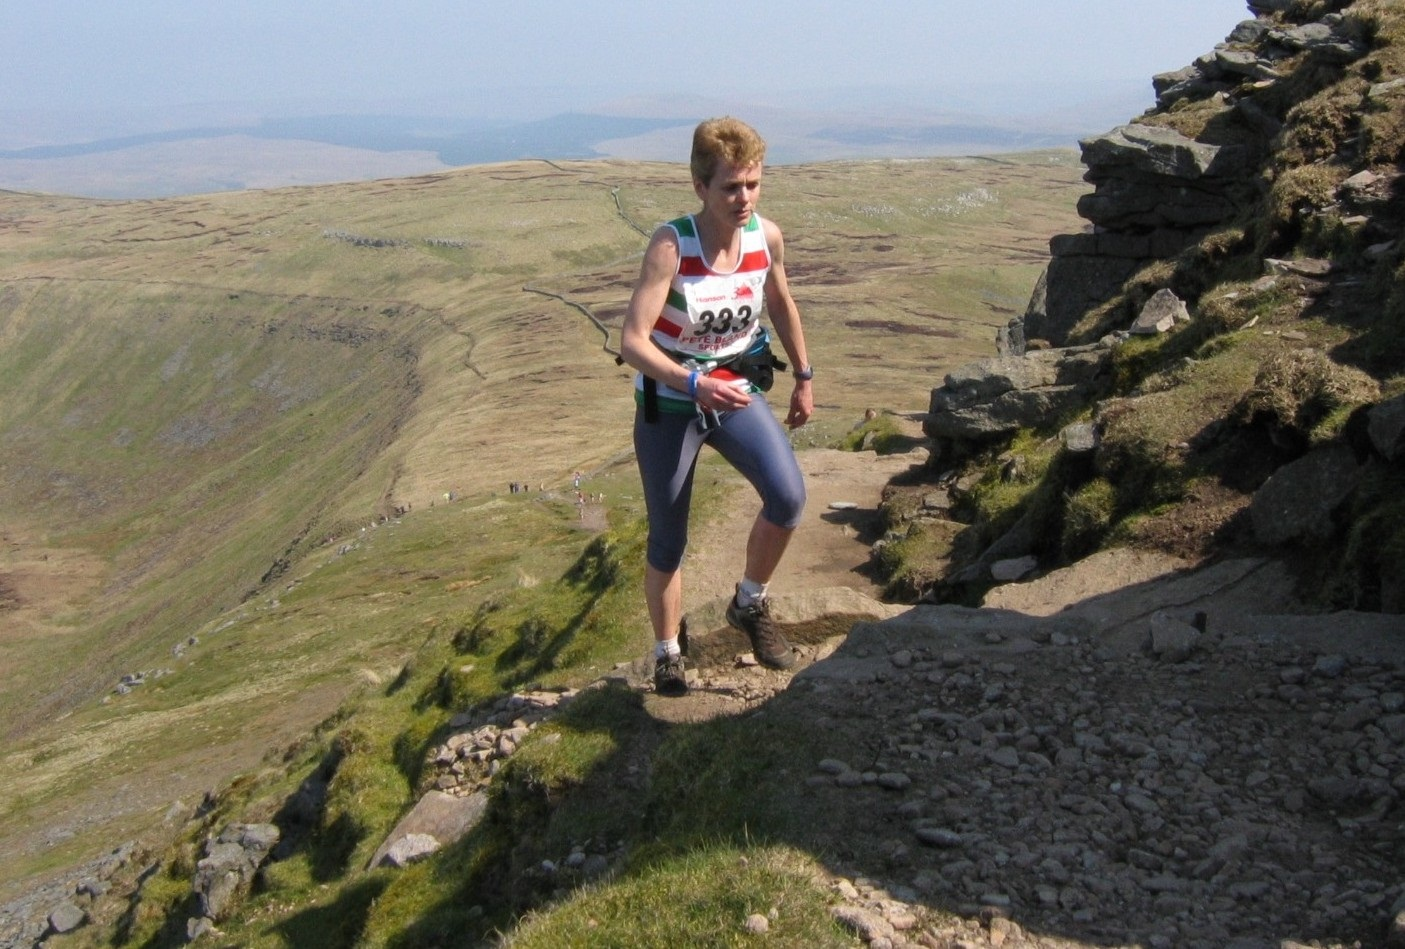 Elizabeth Tomes competing in the Three Peaks race in the colours of Keighley & Craven AC